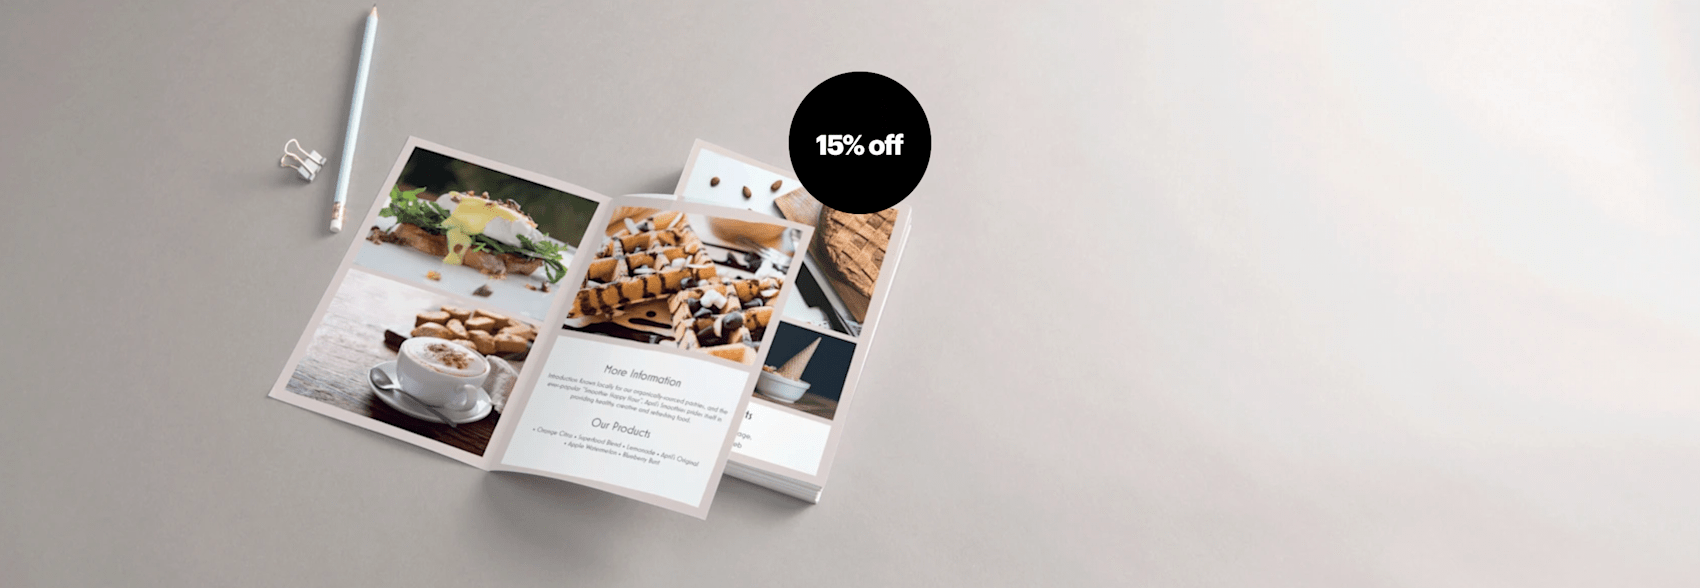 Flyers 15% off